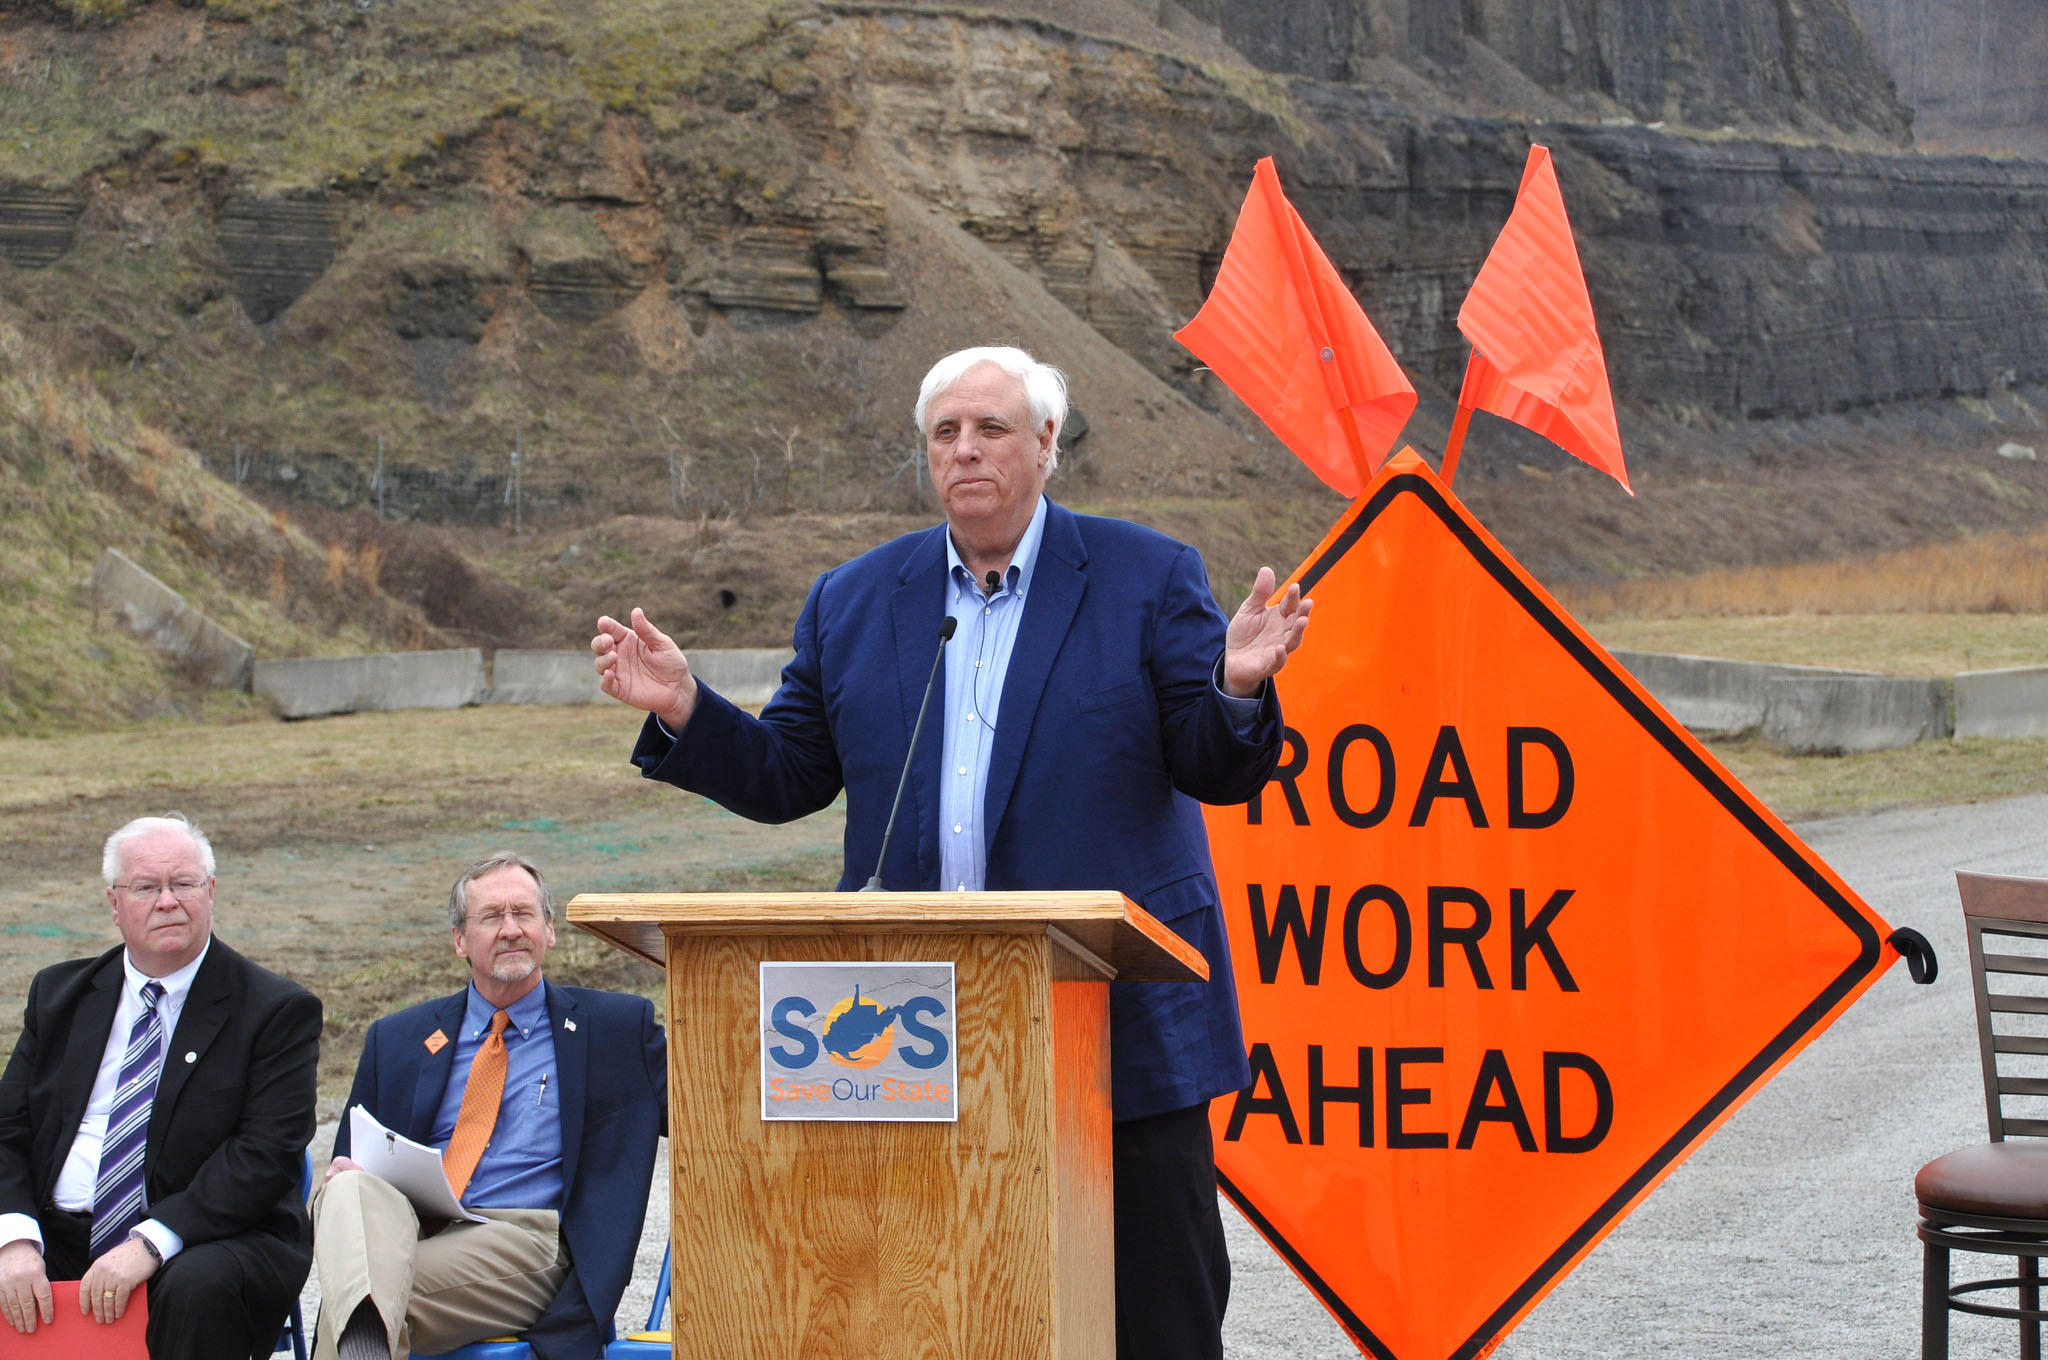 Justice Touts Highways Construction Plan In Statewide Tour